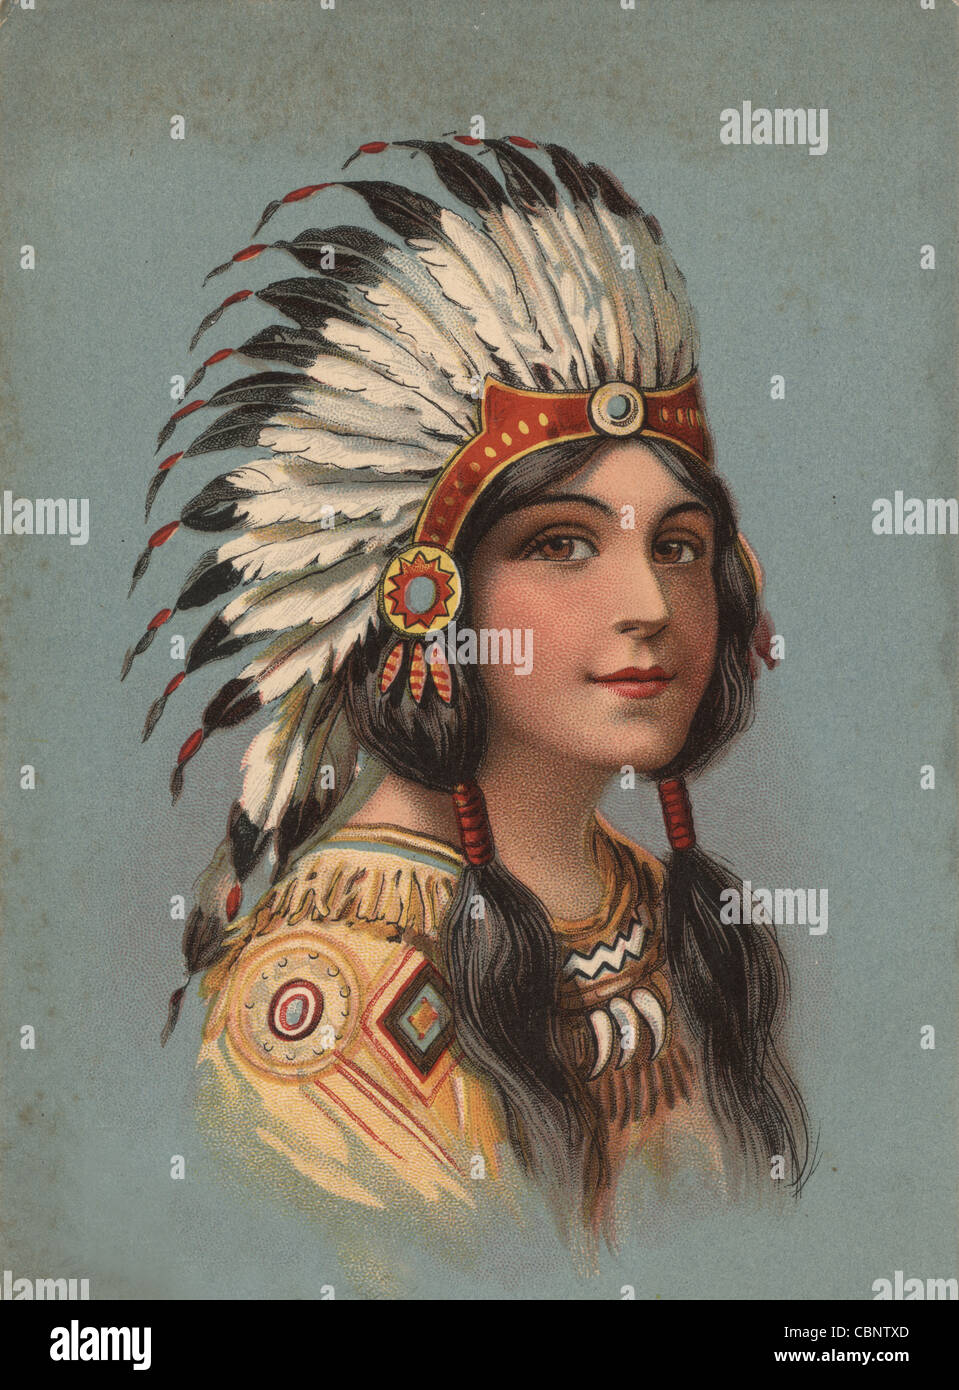 Native American Indian Beauty Imagen De Stock